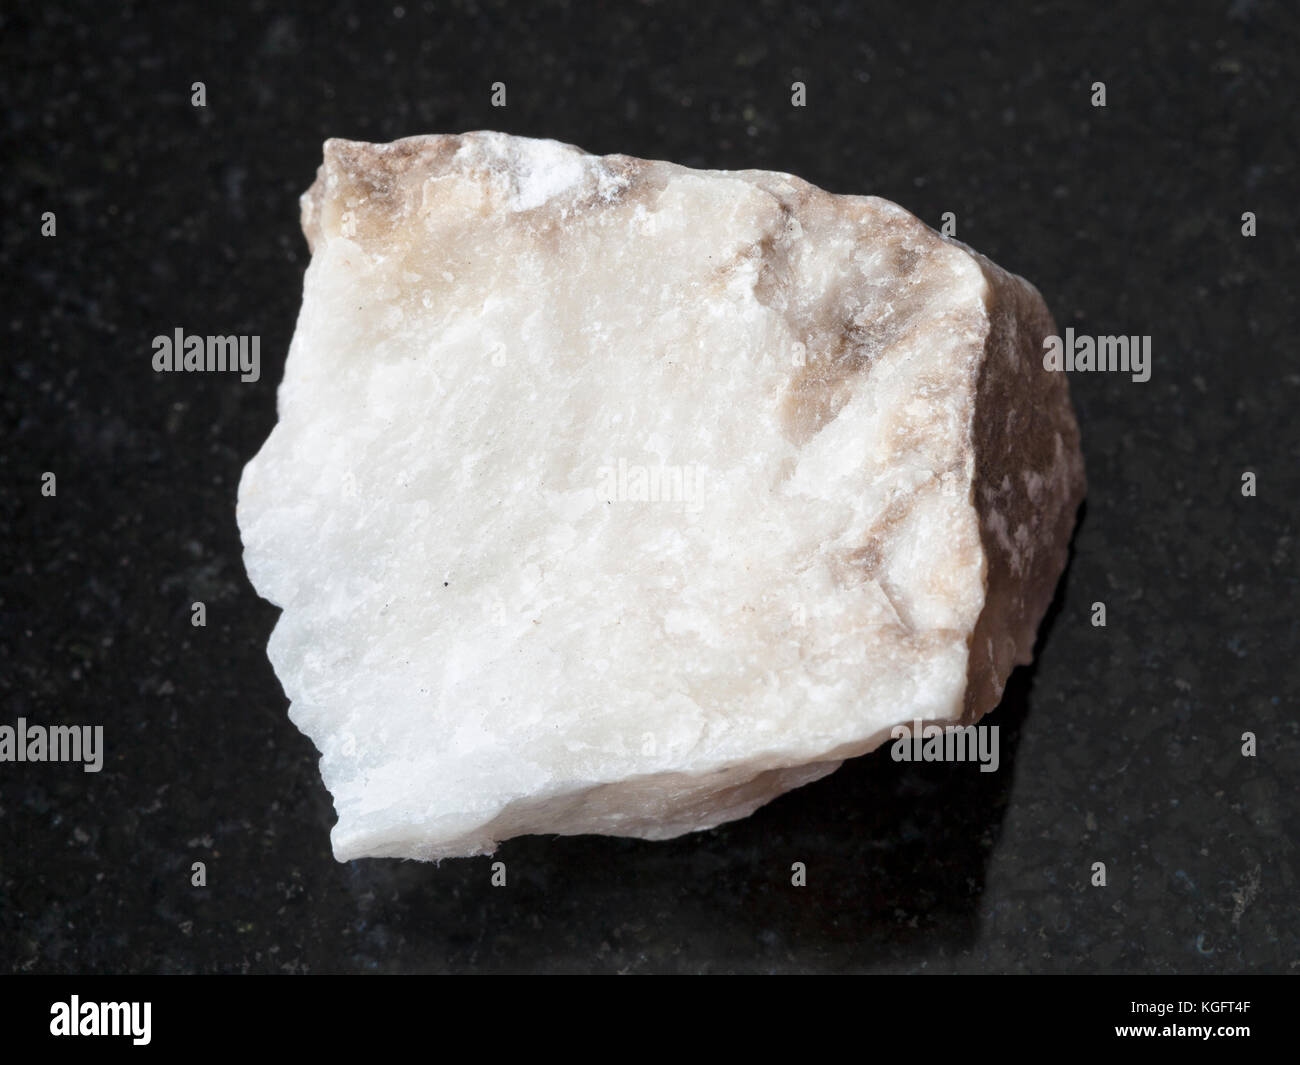 macro shooting of natural mineral rock specimen - raw Anhydrite stone on dark granite background Stock Photo